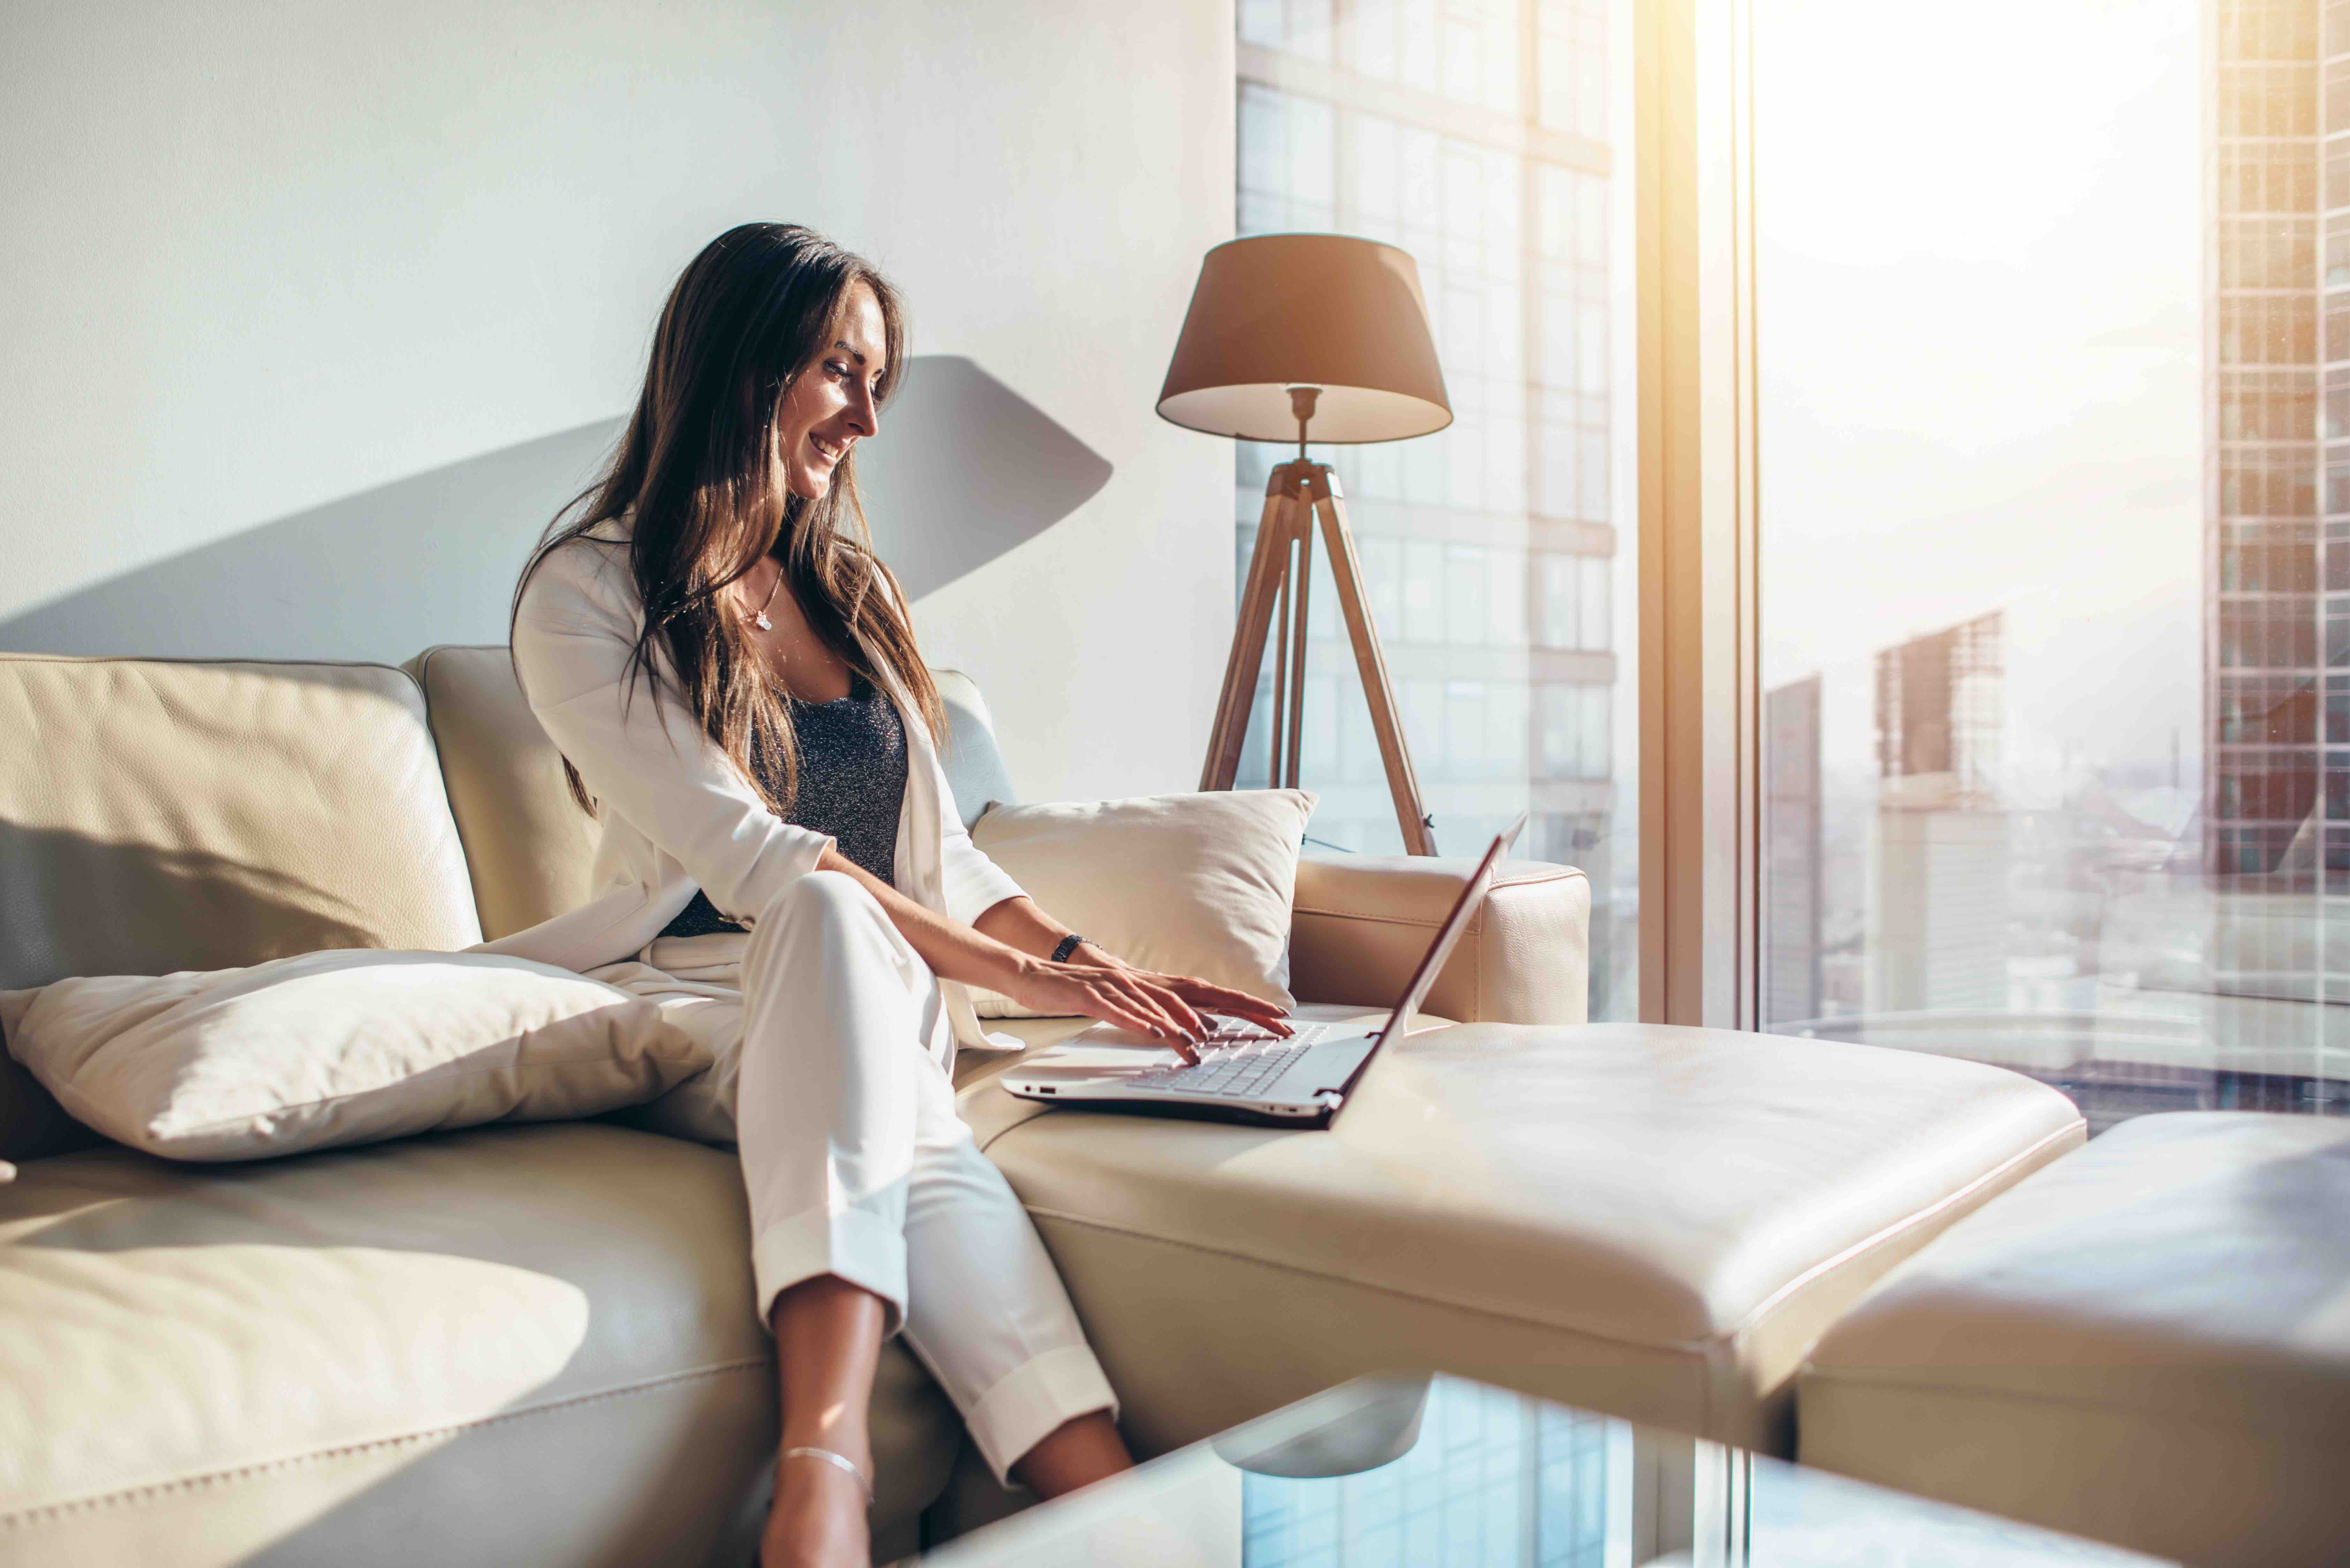 Elegant young female business woman using a laptop sitting on a sofa at home.